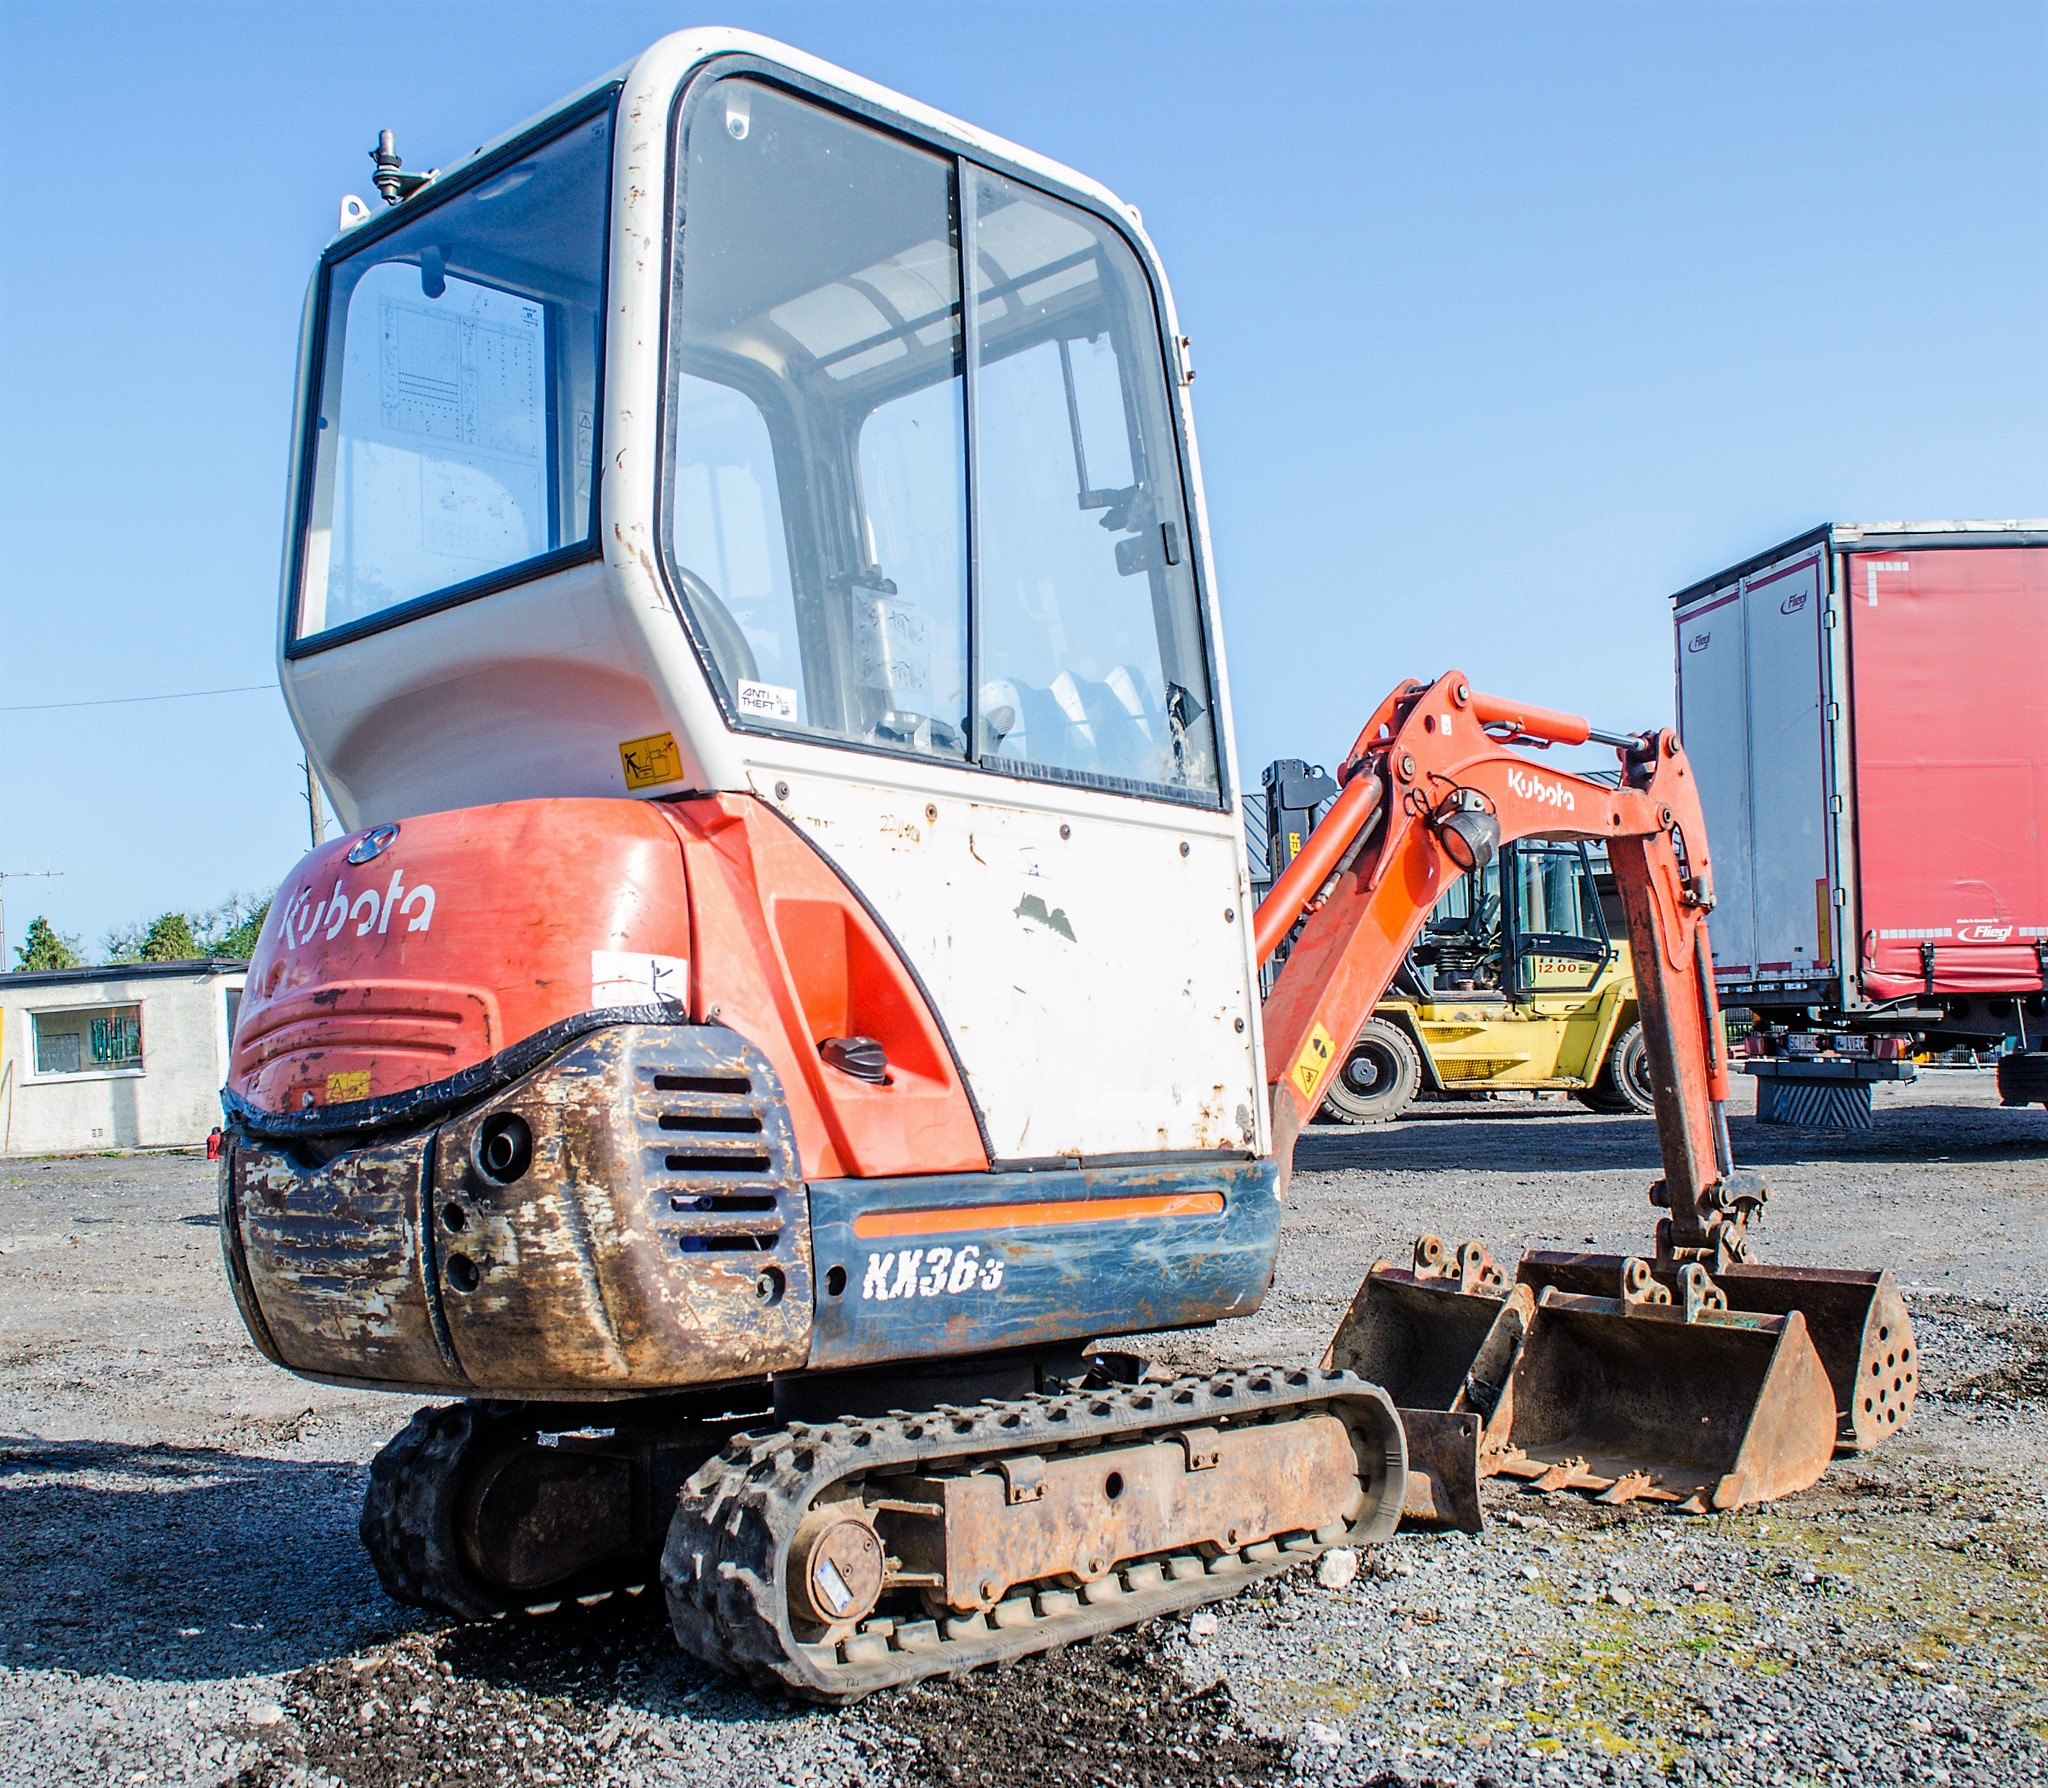 Kubota KX36-3 1.5 tonne rubber tracked mini excavator Year: 2007 S/N: Z077298 Recorded Hours: 4205 - Image 4 of 18